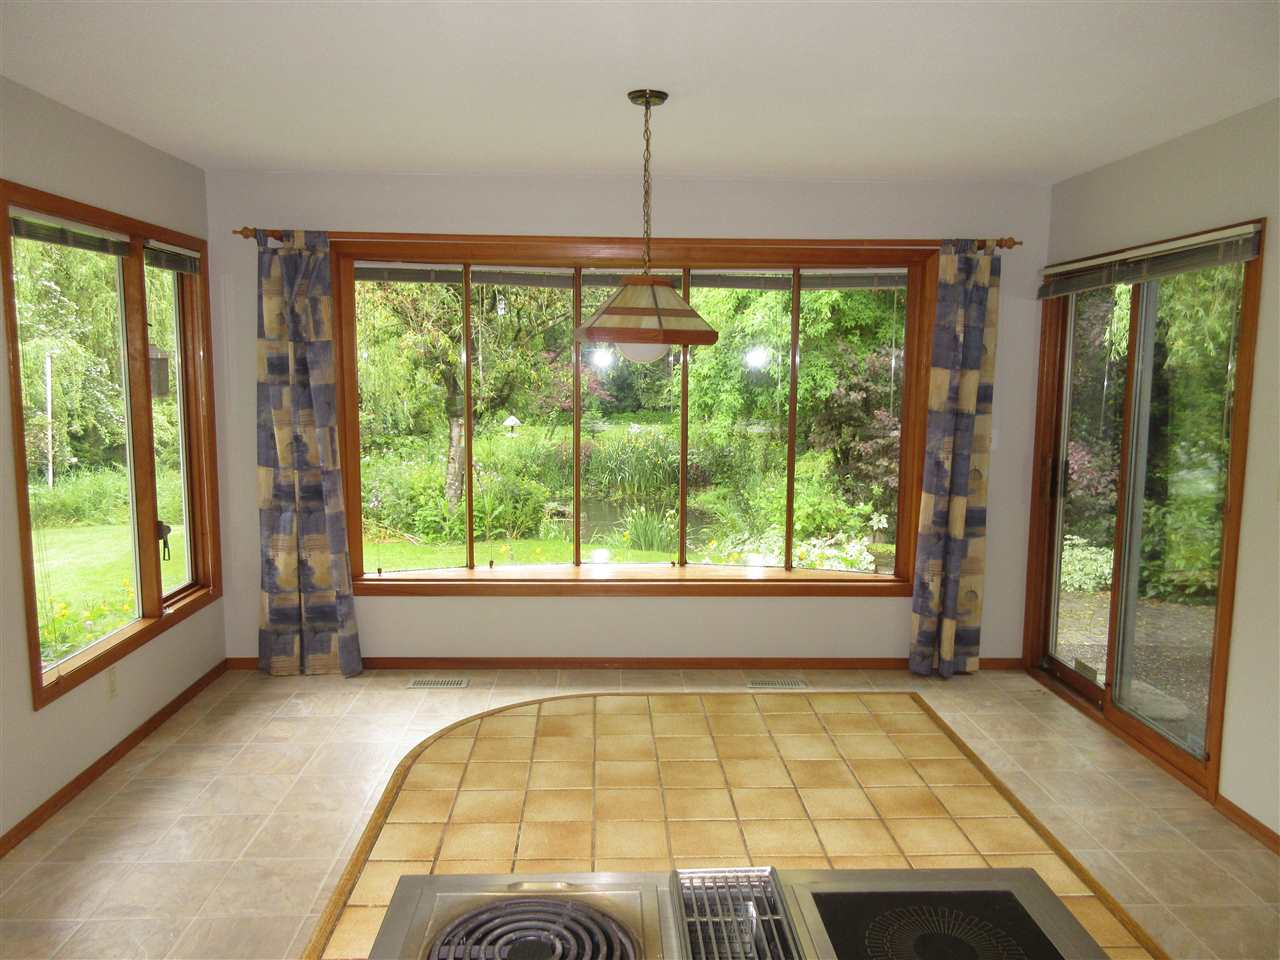 Photo 12: 45625 WORTHINGTON Place in Sardis: Sardis West Vedder Rd House for sale : MLS(r) # R2176017